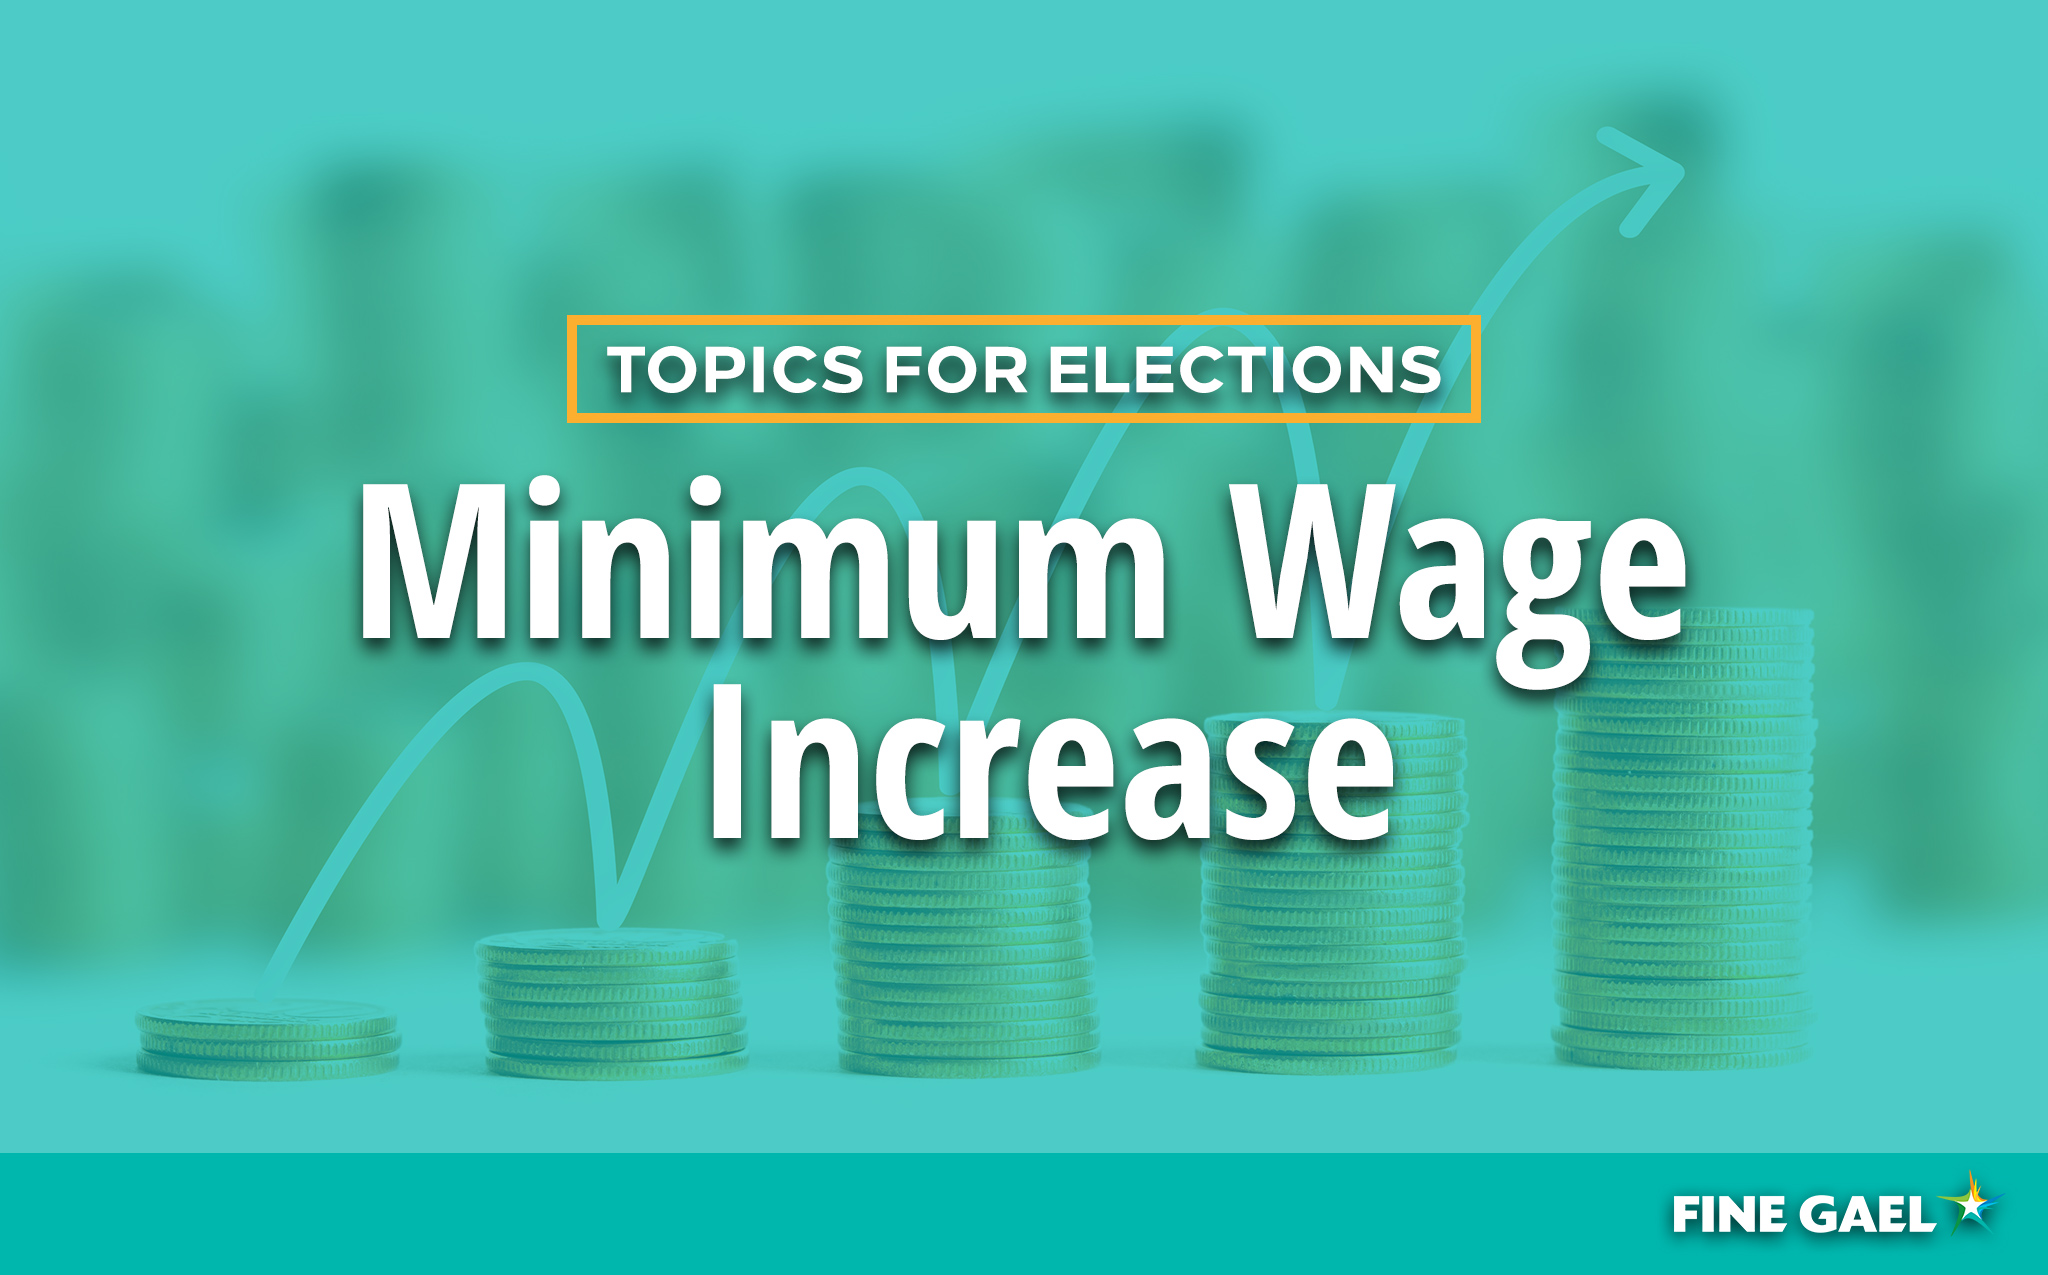 Topics for Elections Minimum Wage Increase